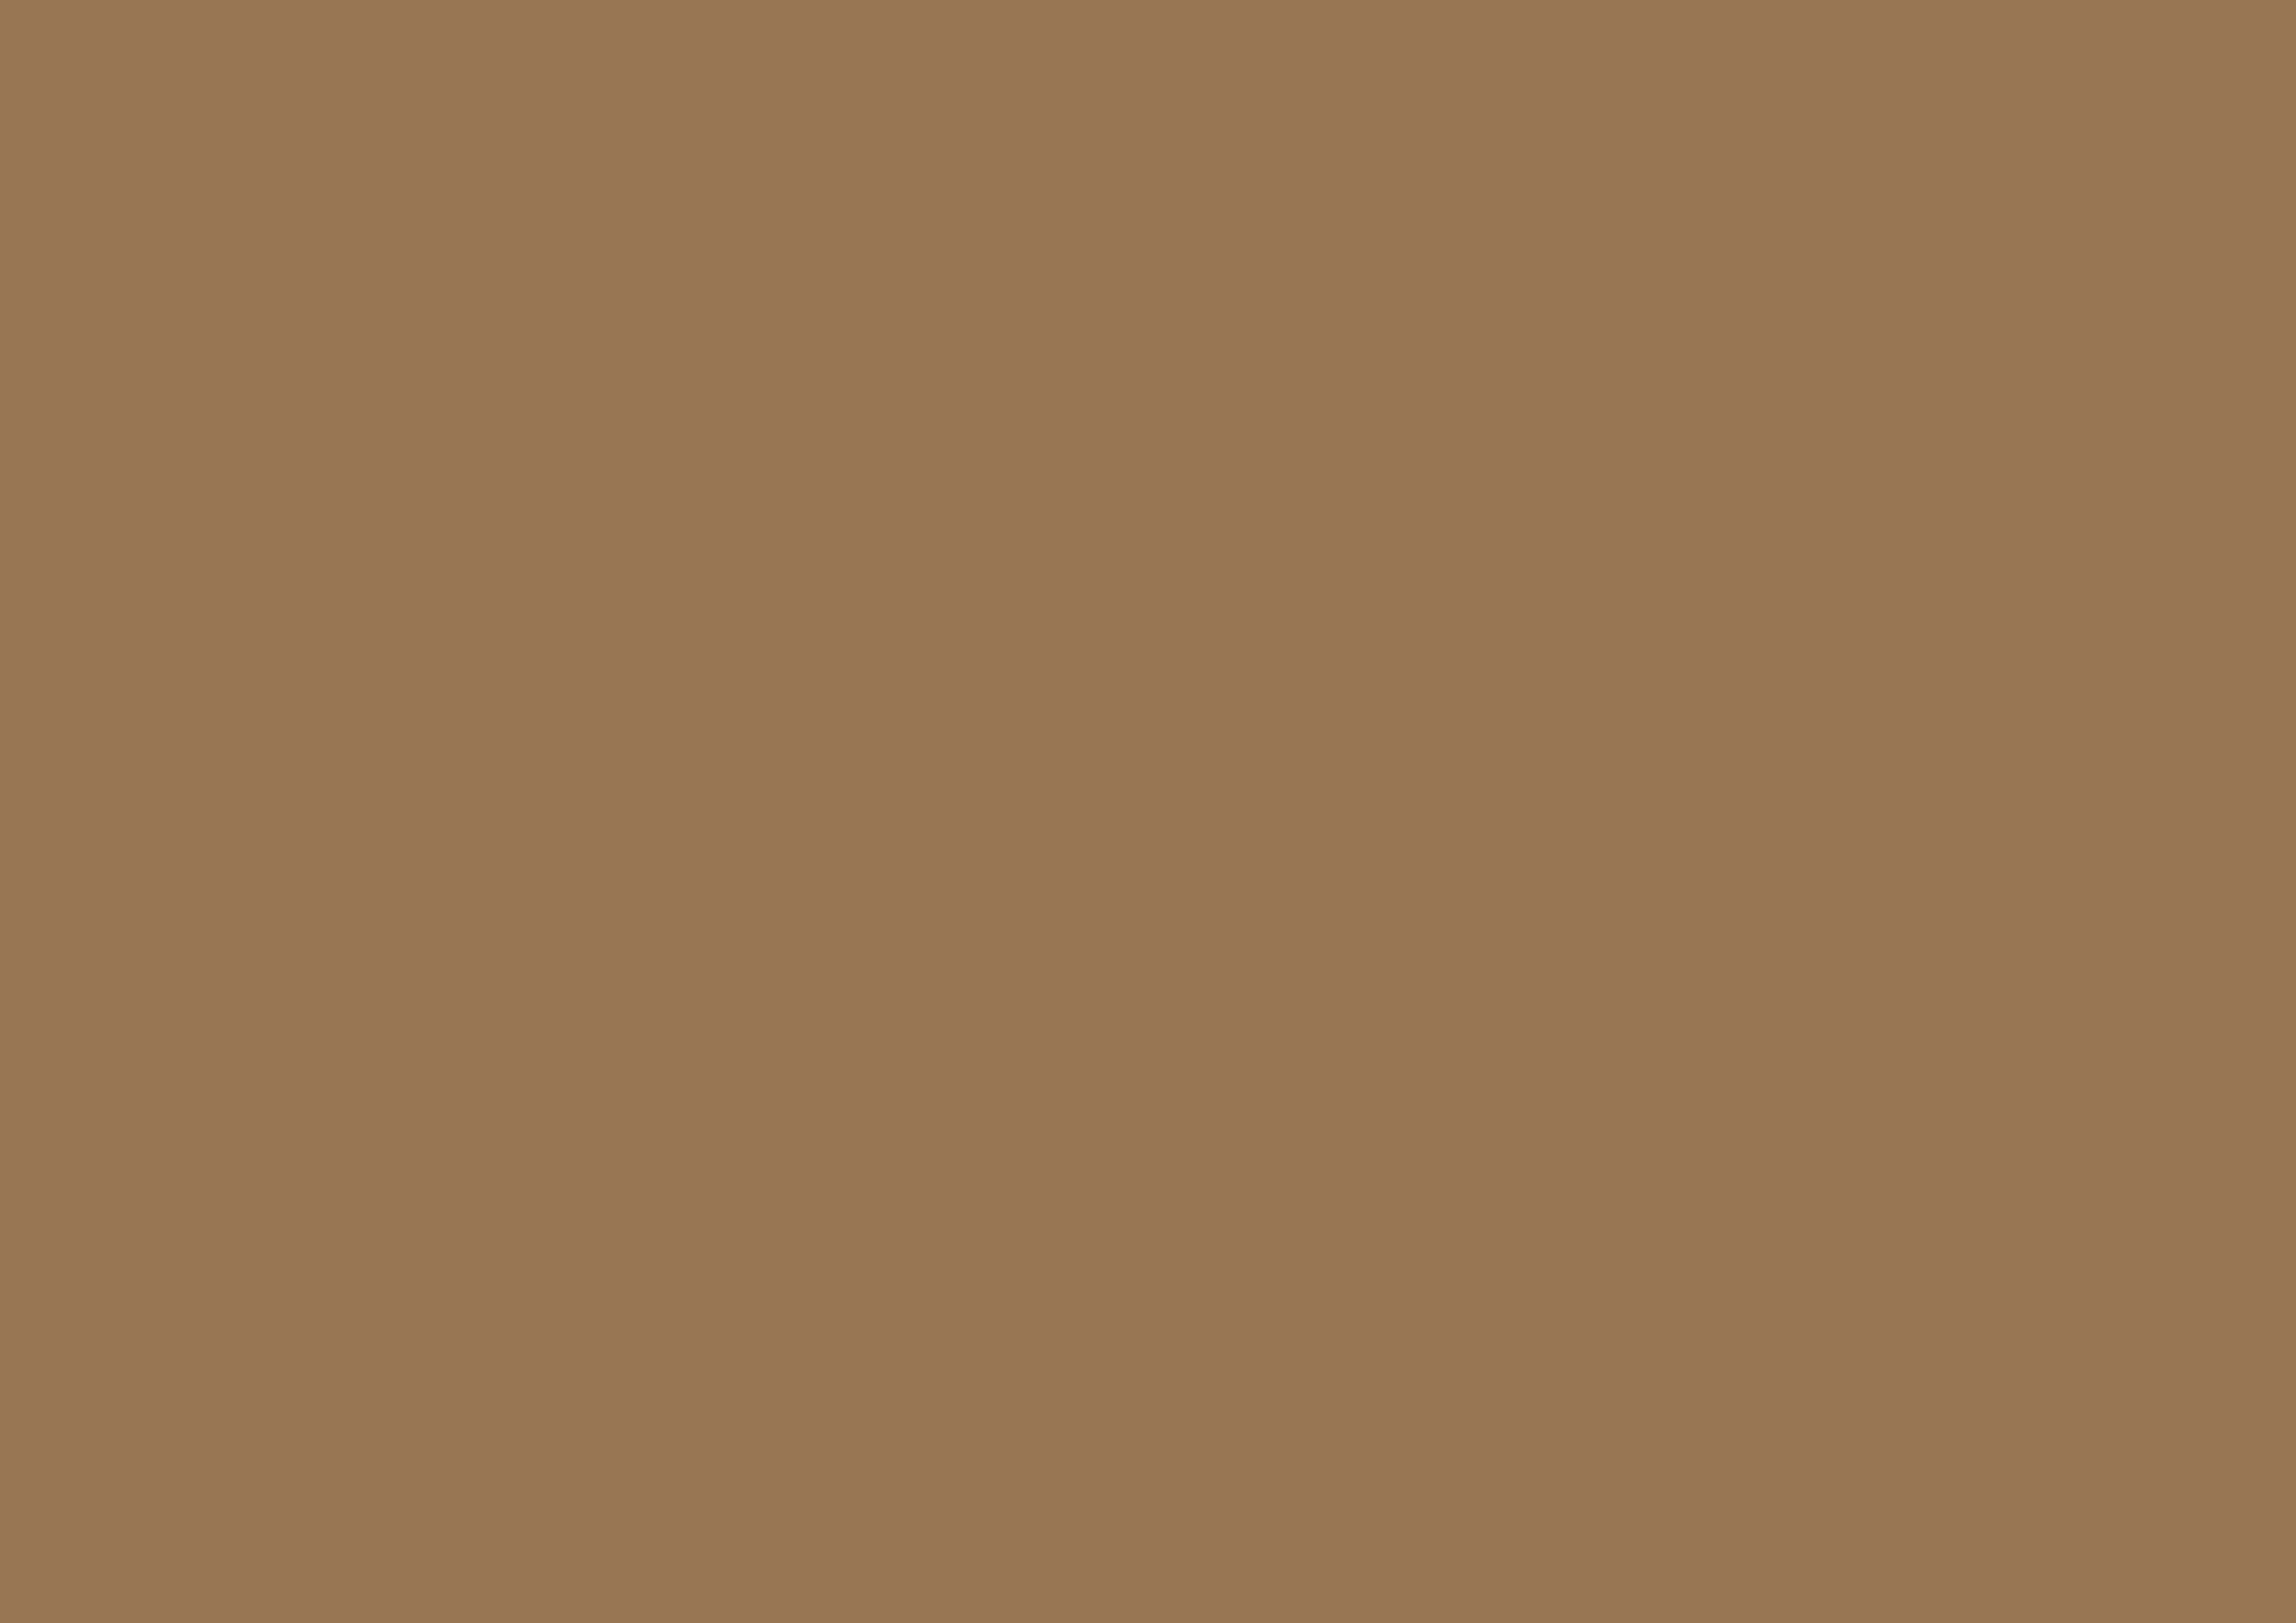 3508x2480 Pale Brown Solid Color Background